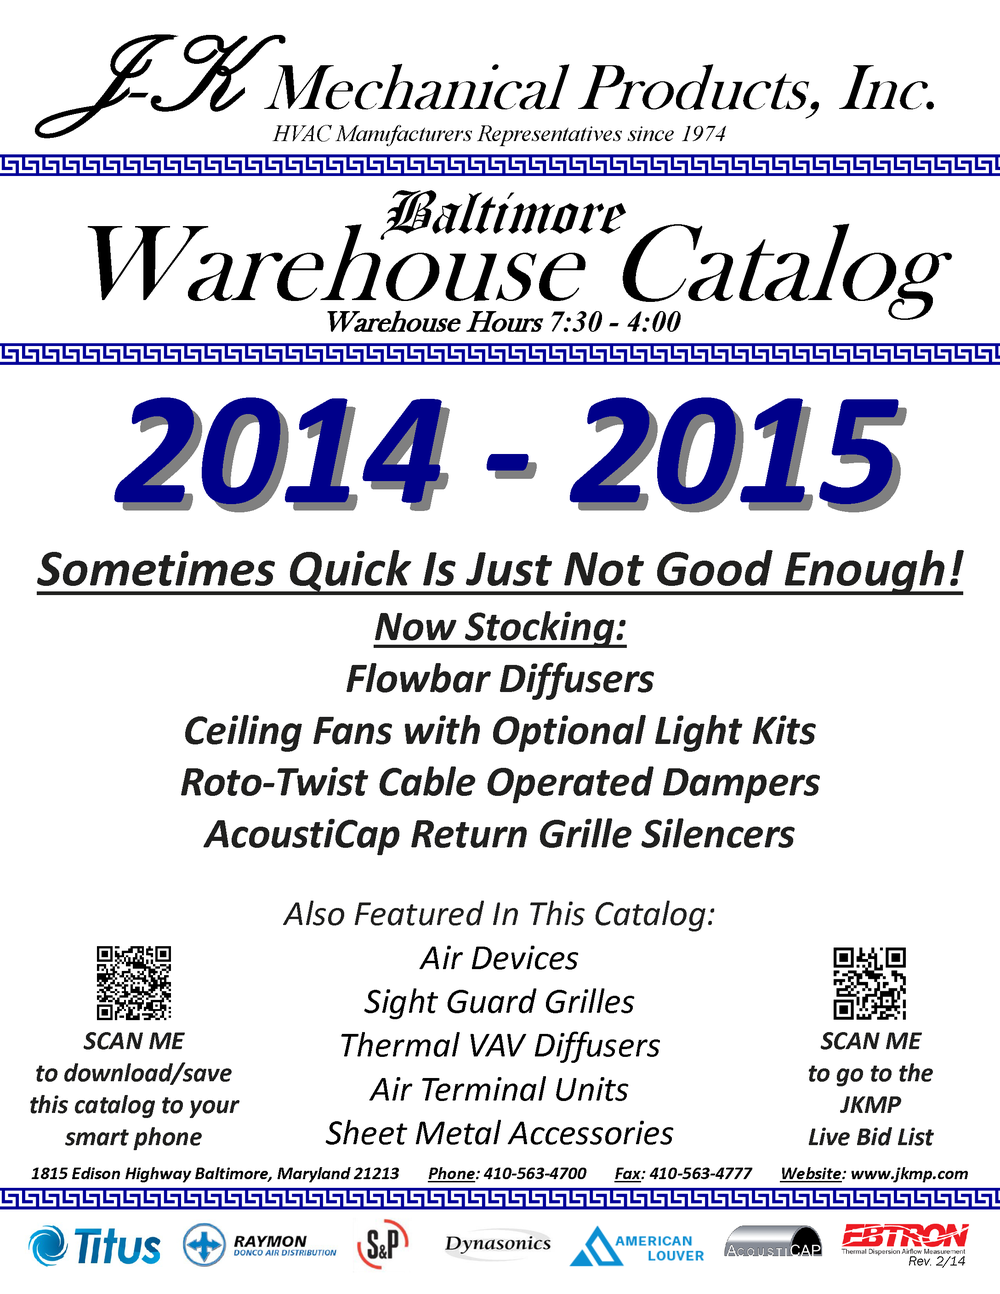 2014 - 2015 JKMP Warehouse catalog               (click picture to download)